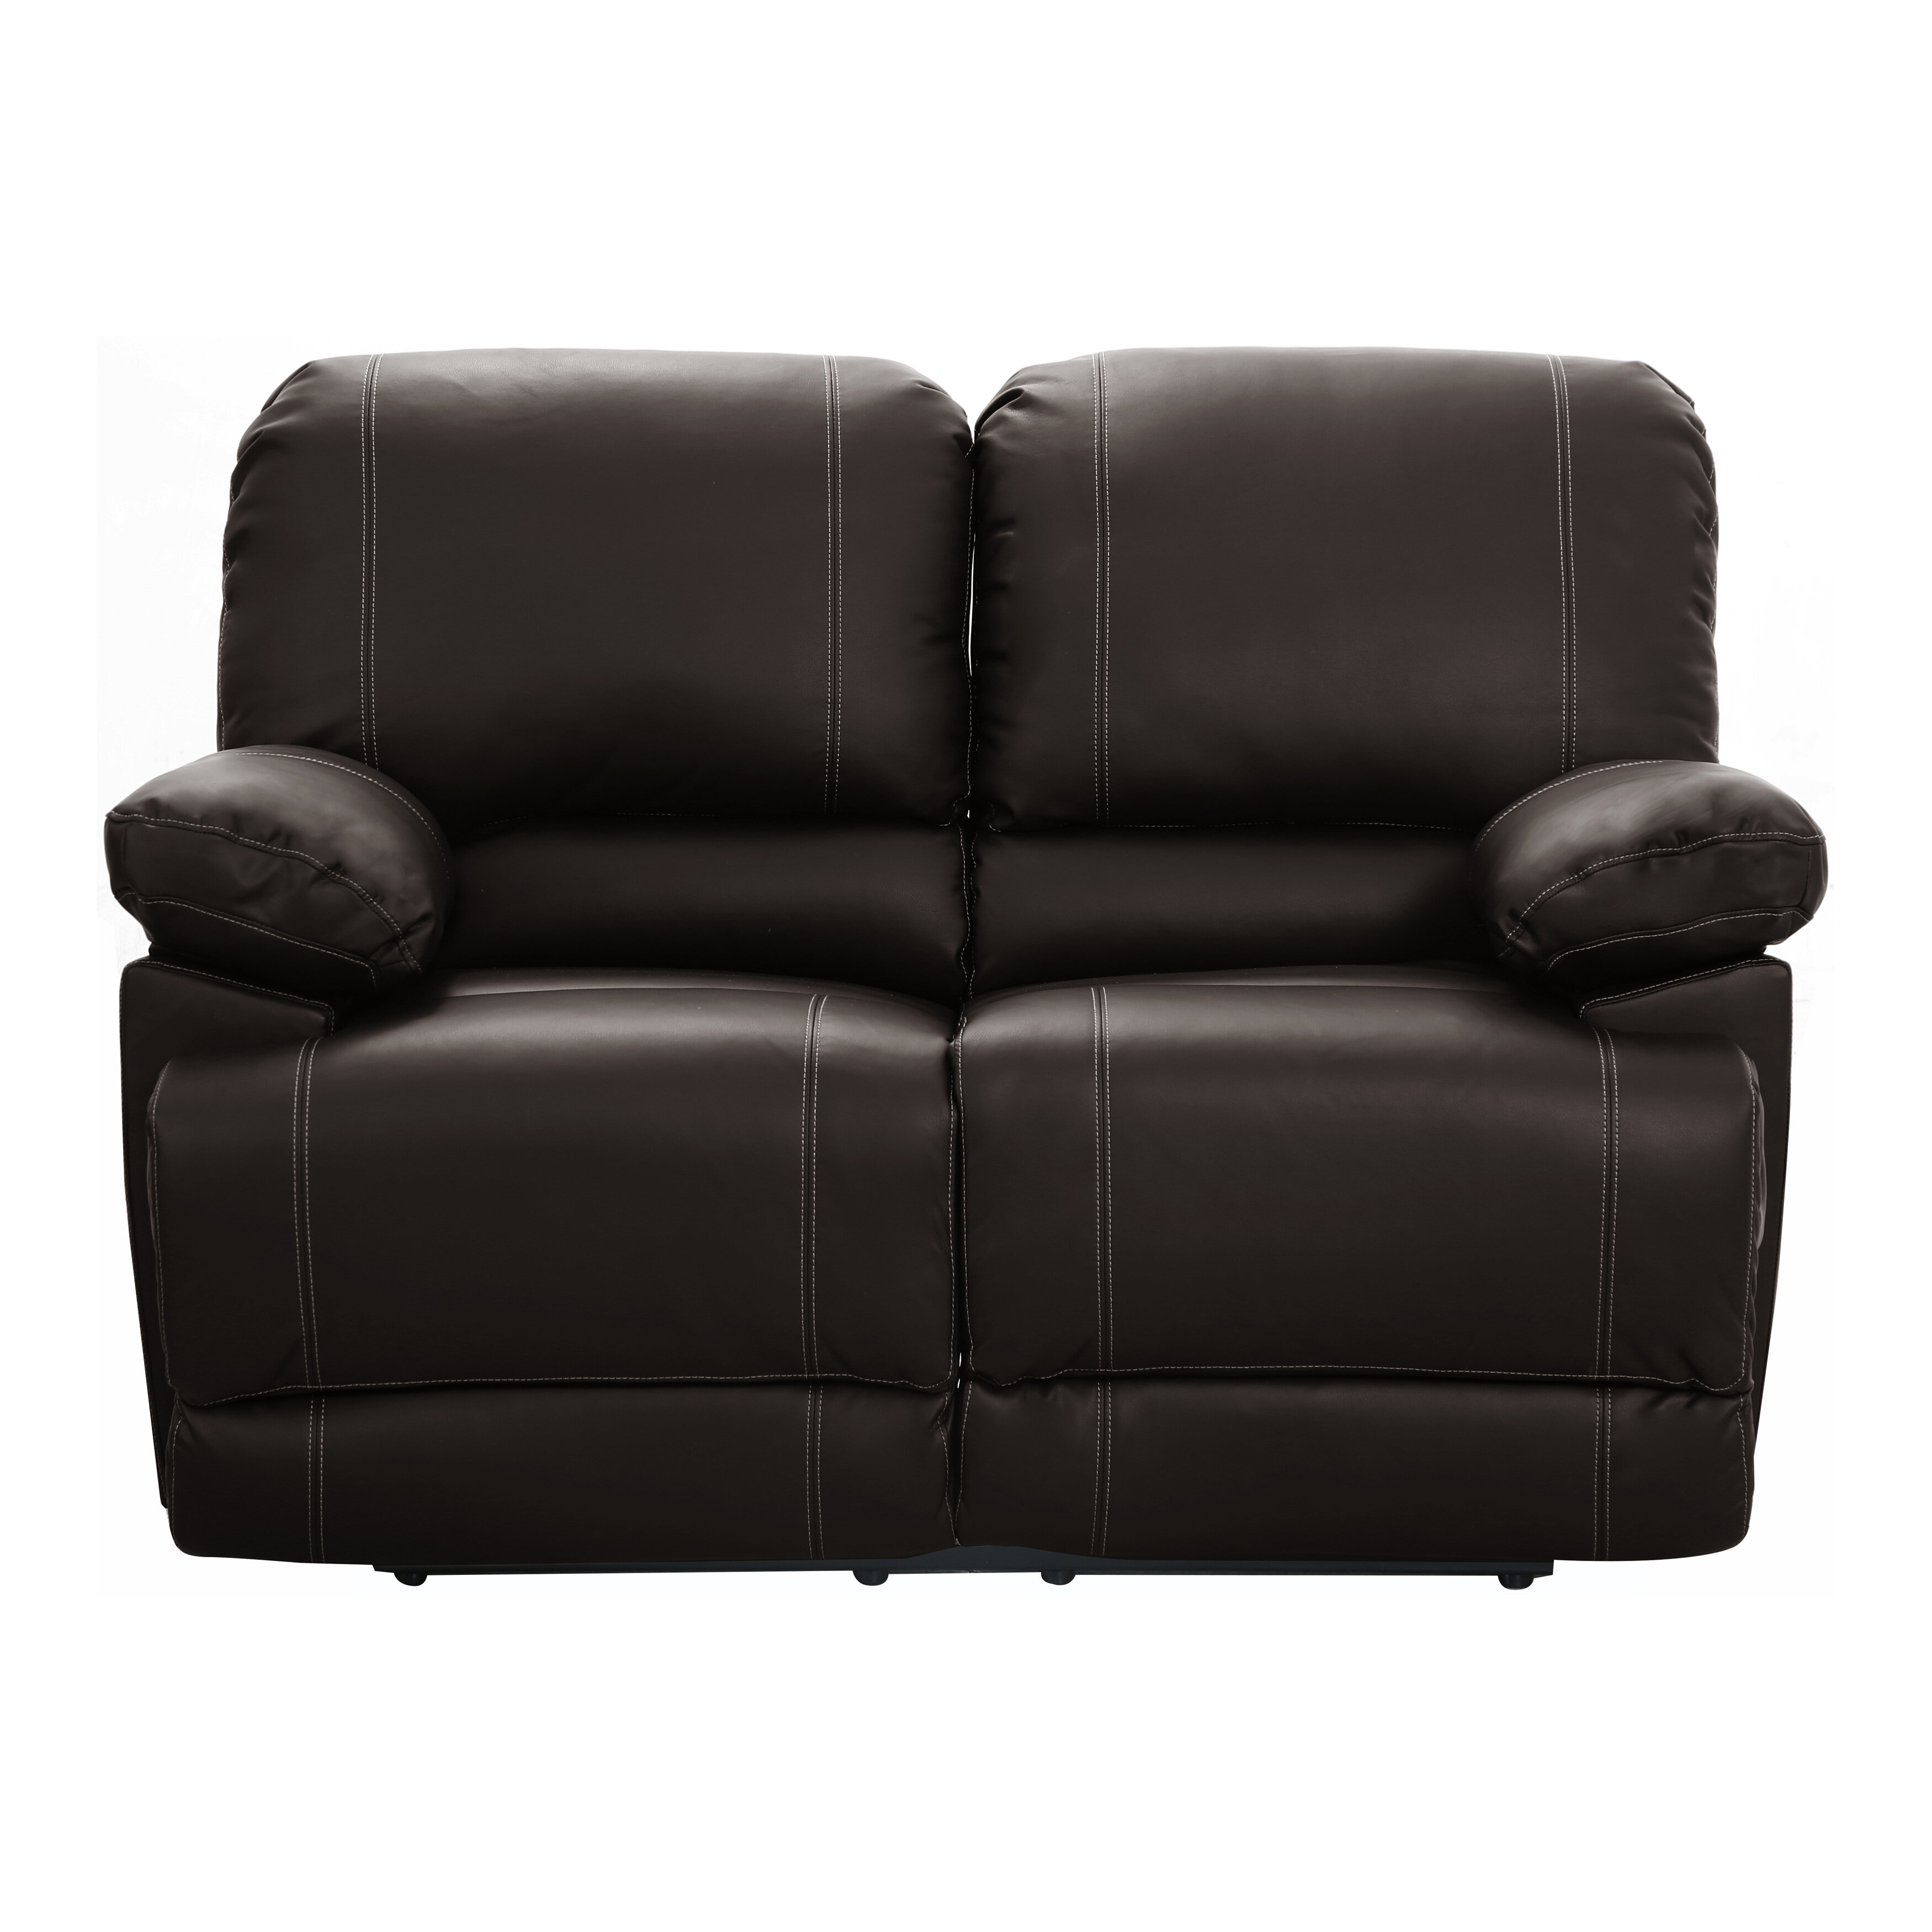 Andover Mills Edgar Faux Leather 61 Wide Pillow Top Arm Reclining Loveseat Reviews Wayfair